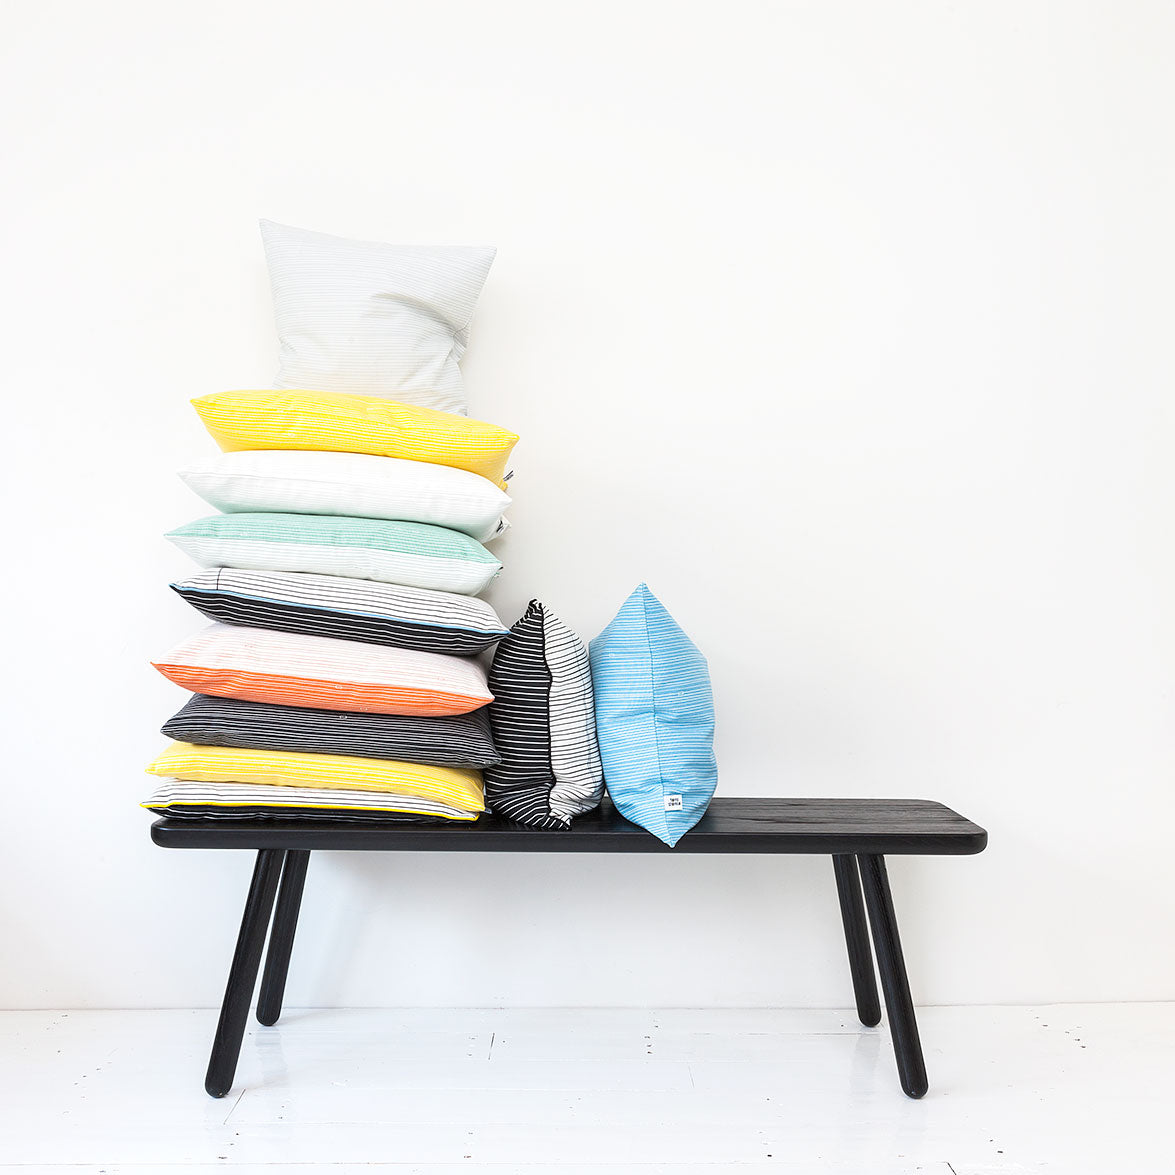 Toffe Stoffen - Fabrics, Cushion Cases and Tea Towels